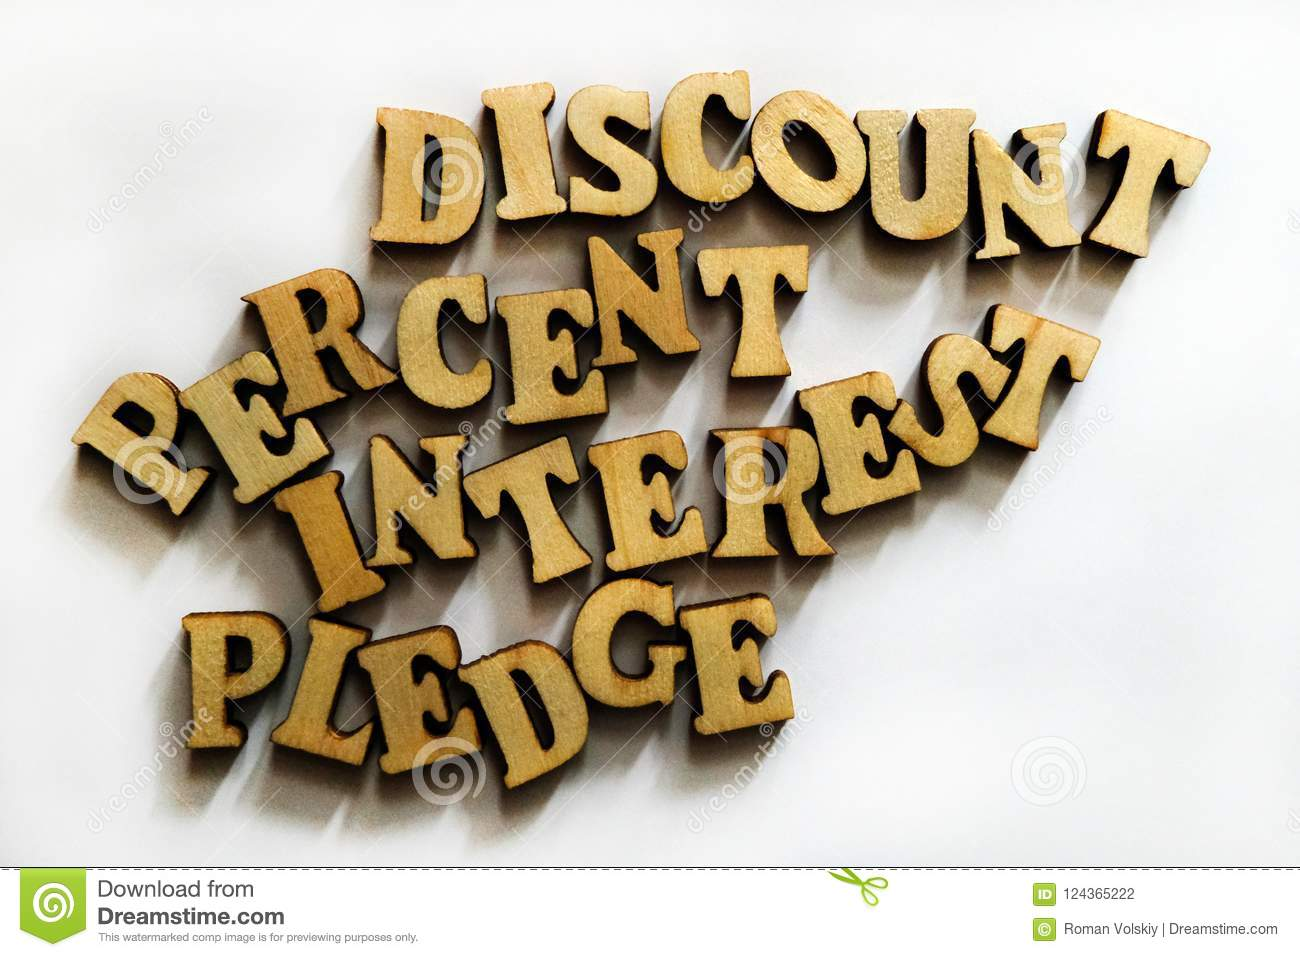 Discount Interest Percent And Pledge Words Of Wooden Letters